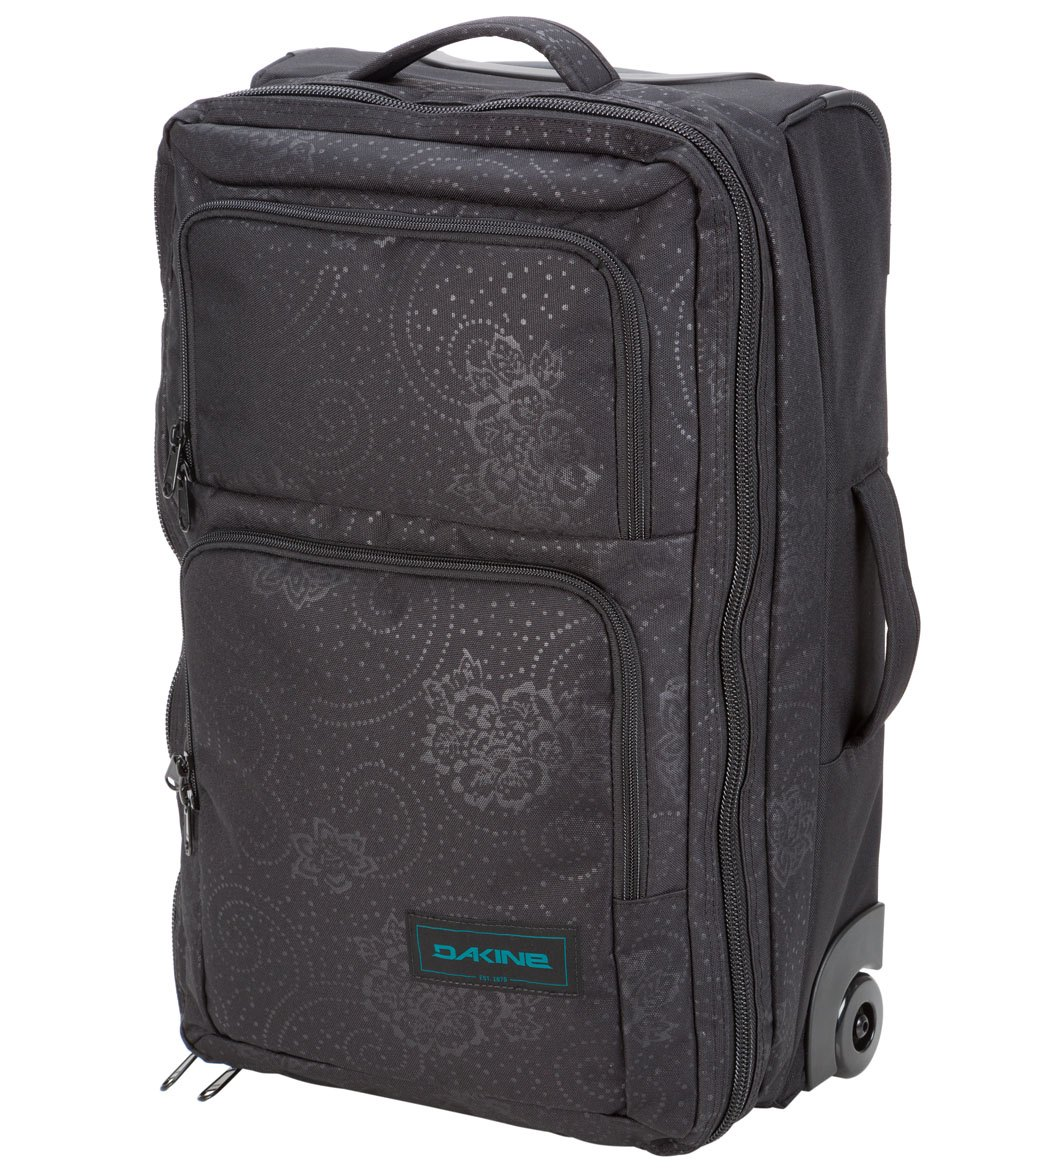 Dakine Women s Carry-On 36L Roller Bag at SwimOutlet.com - Free ... 90997c8035